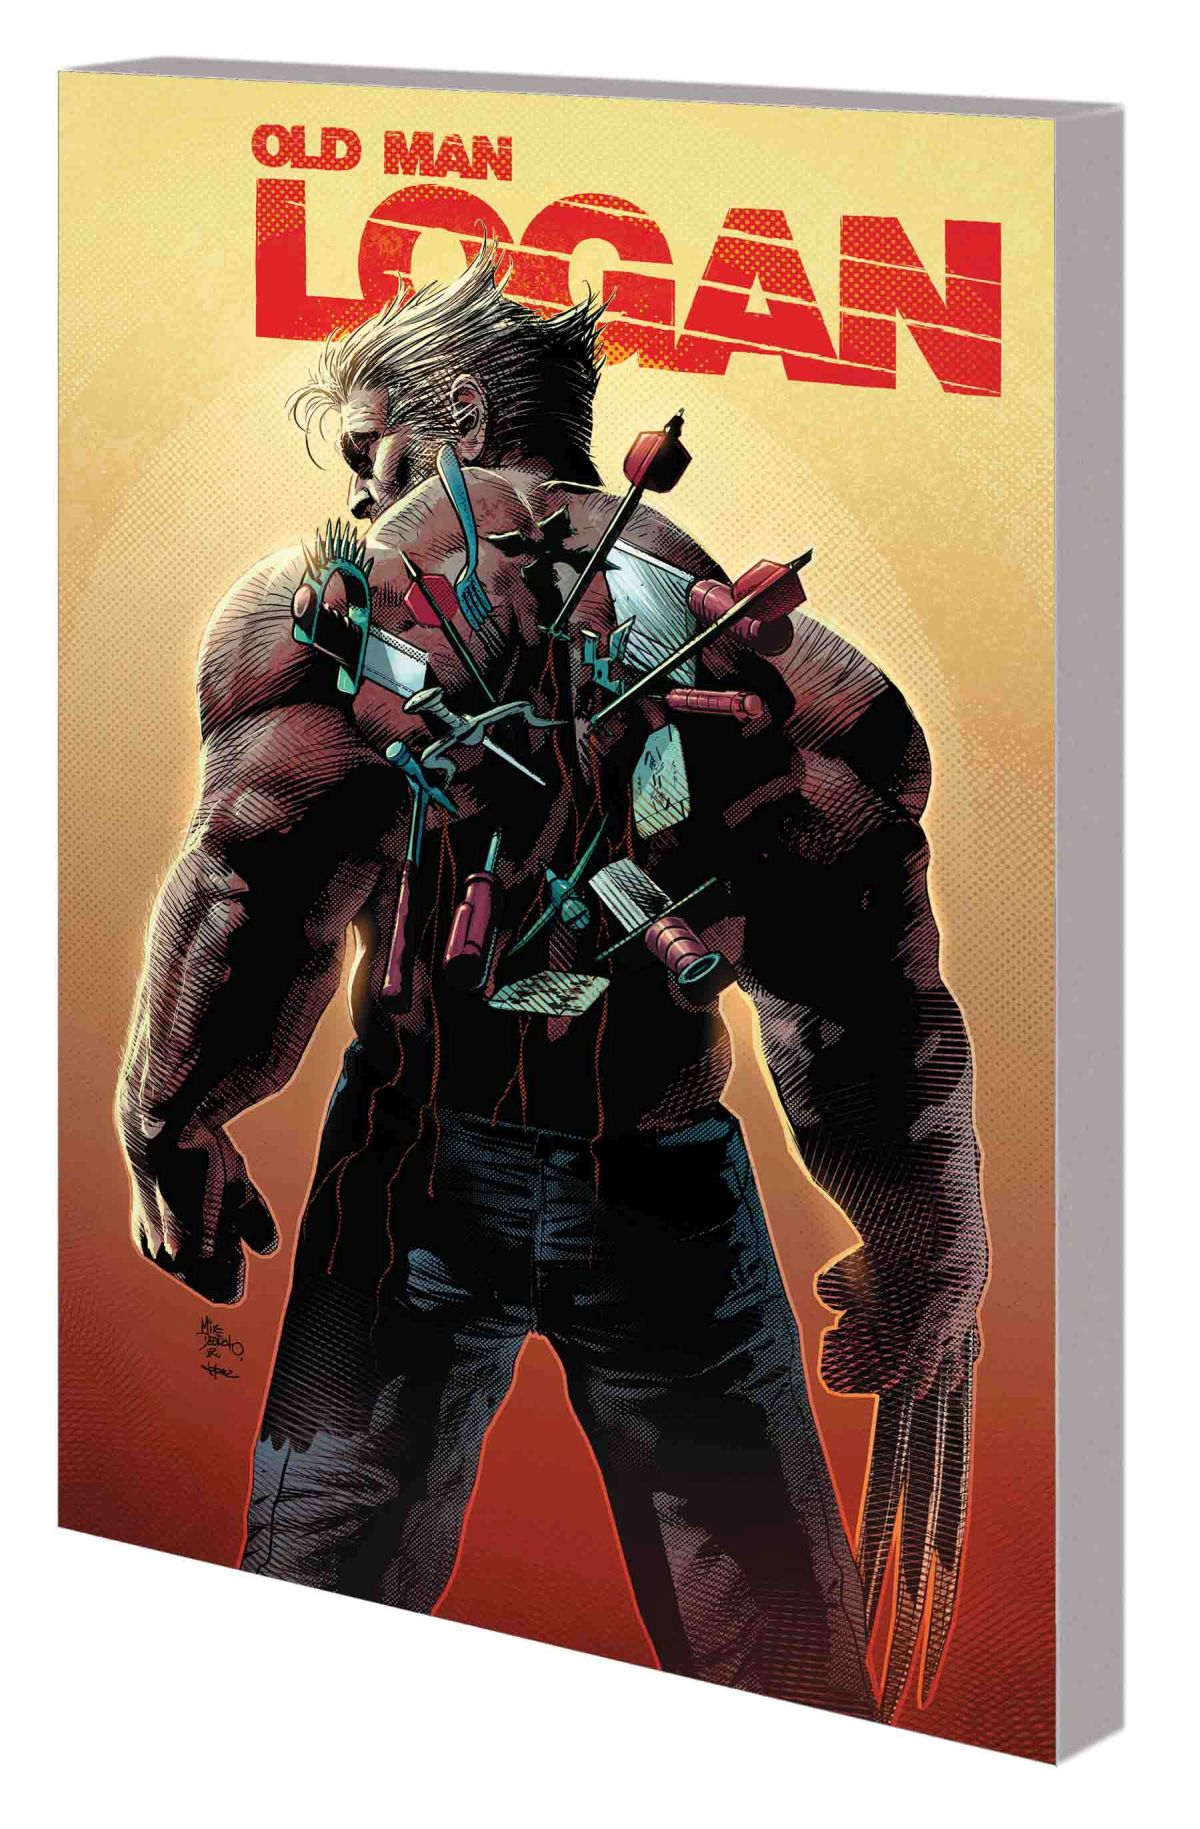 WOLVERINE: OLD MAN LOGAN VOL. 9 — THE HUNTER AND THE HUNTED TPB